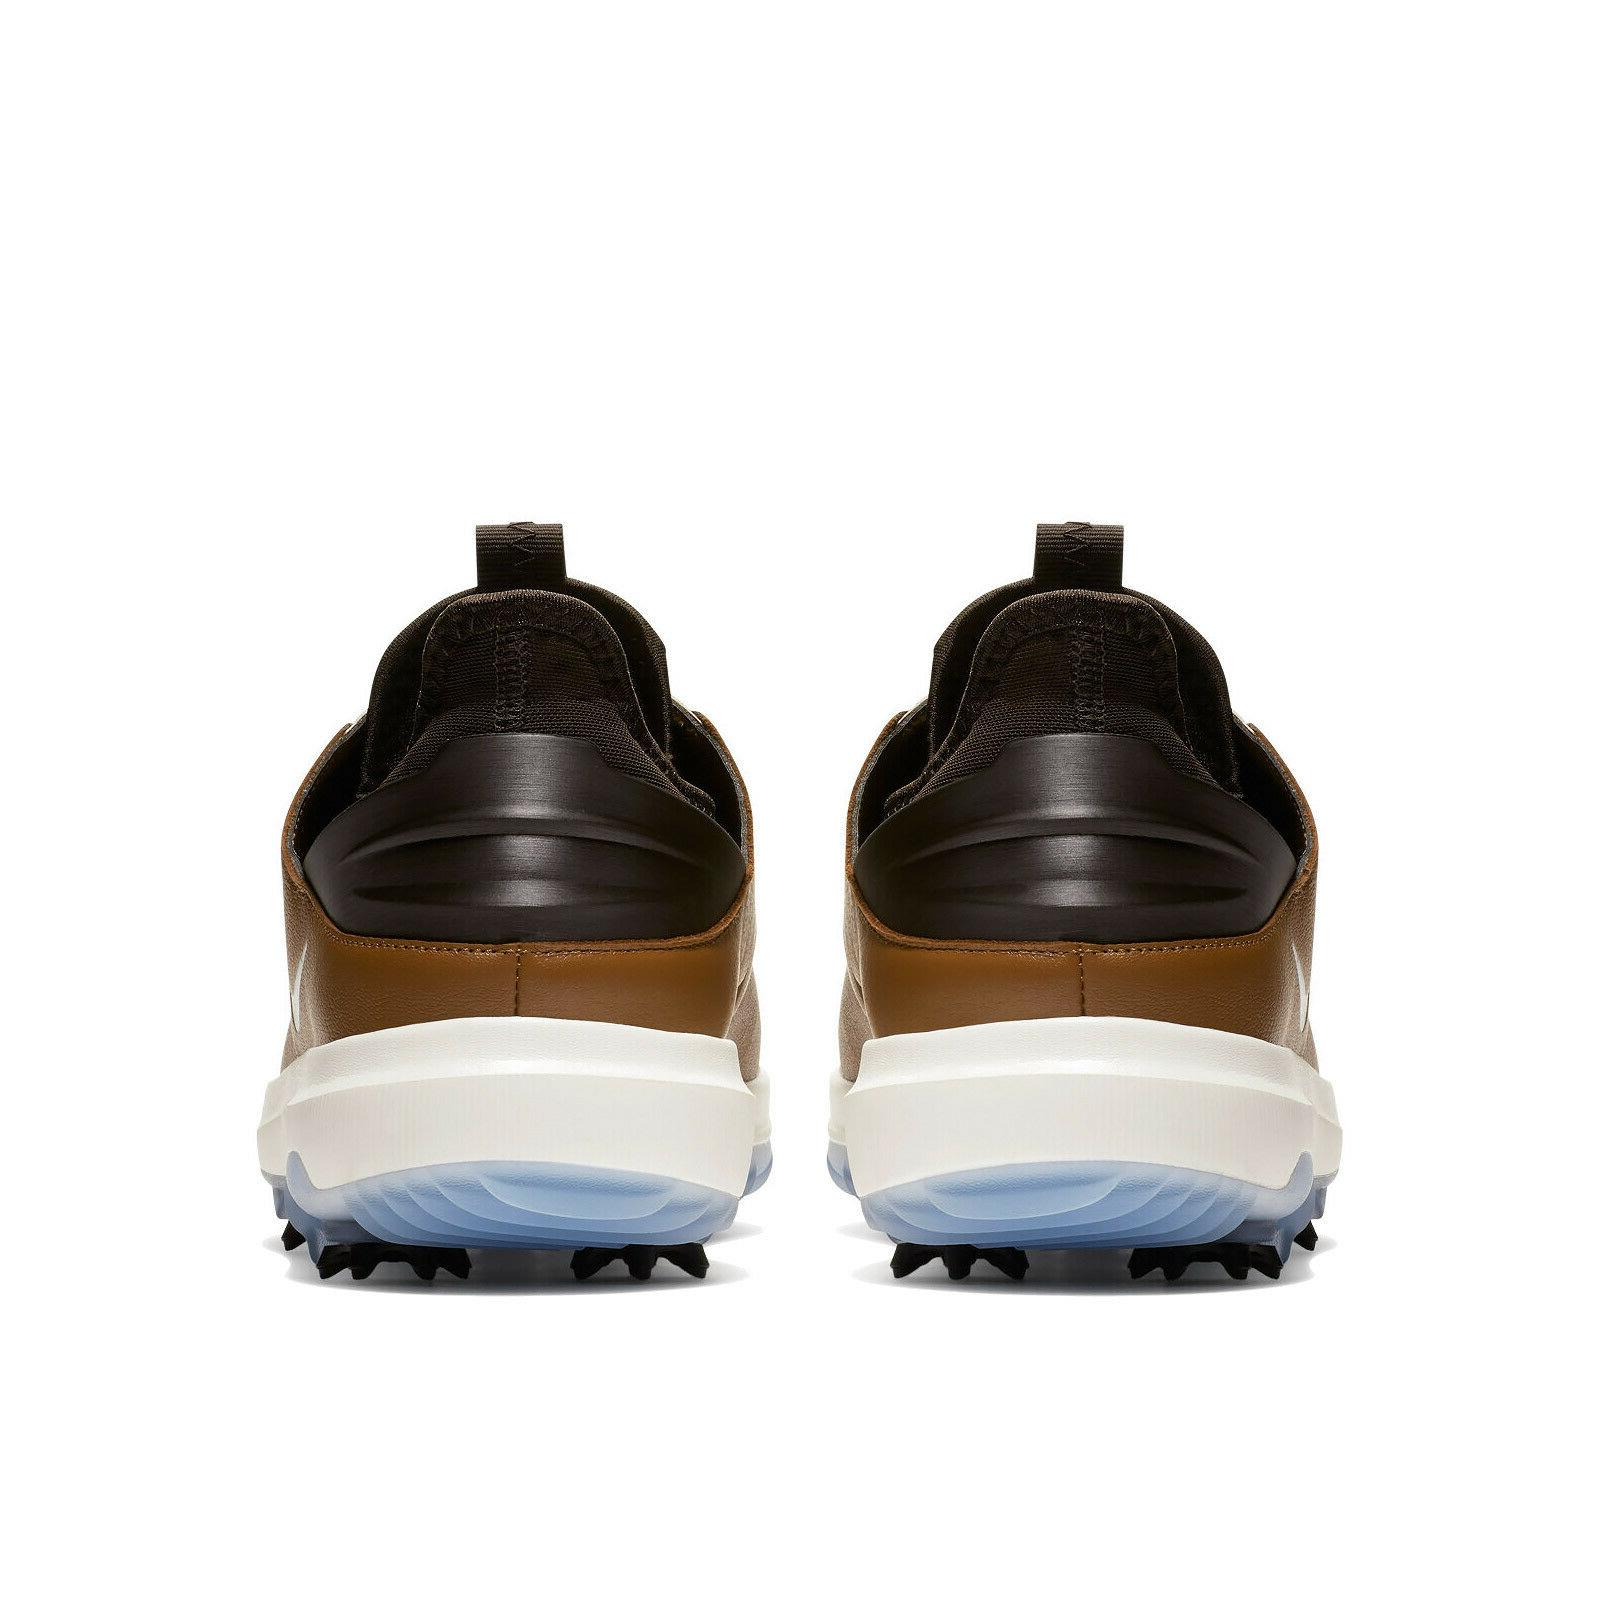 New GOLF Air Zoom Shoes Brown